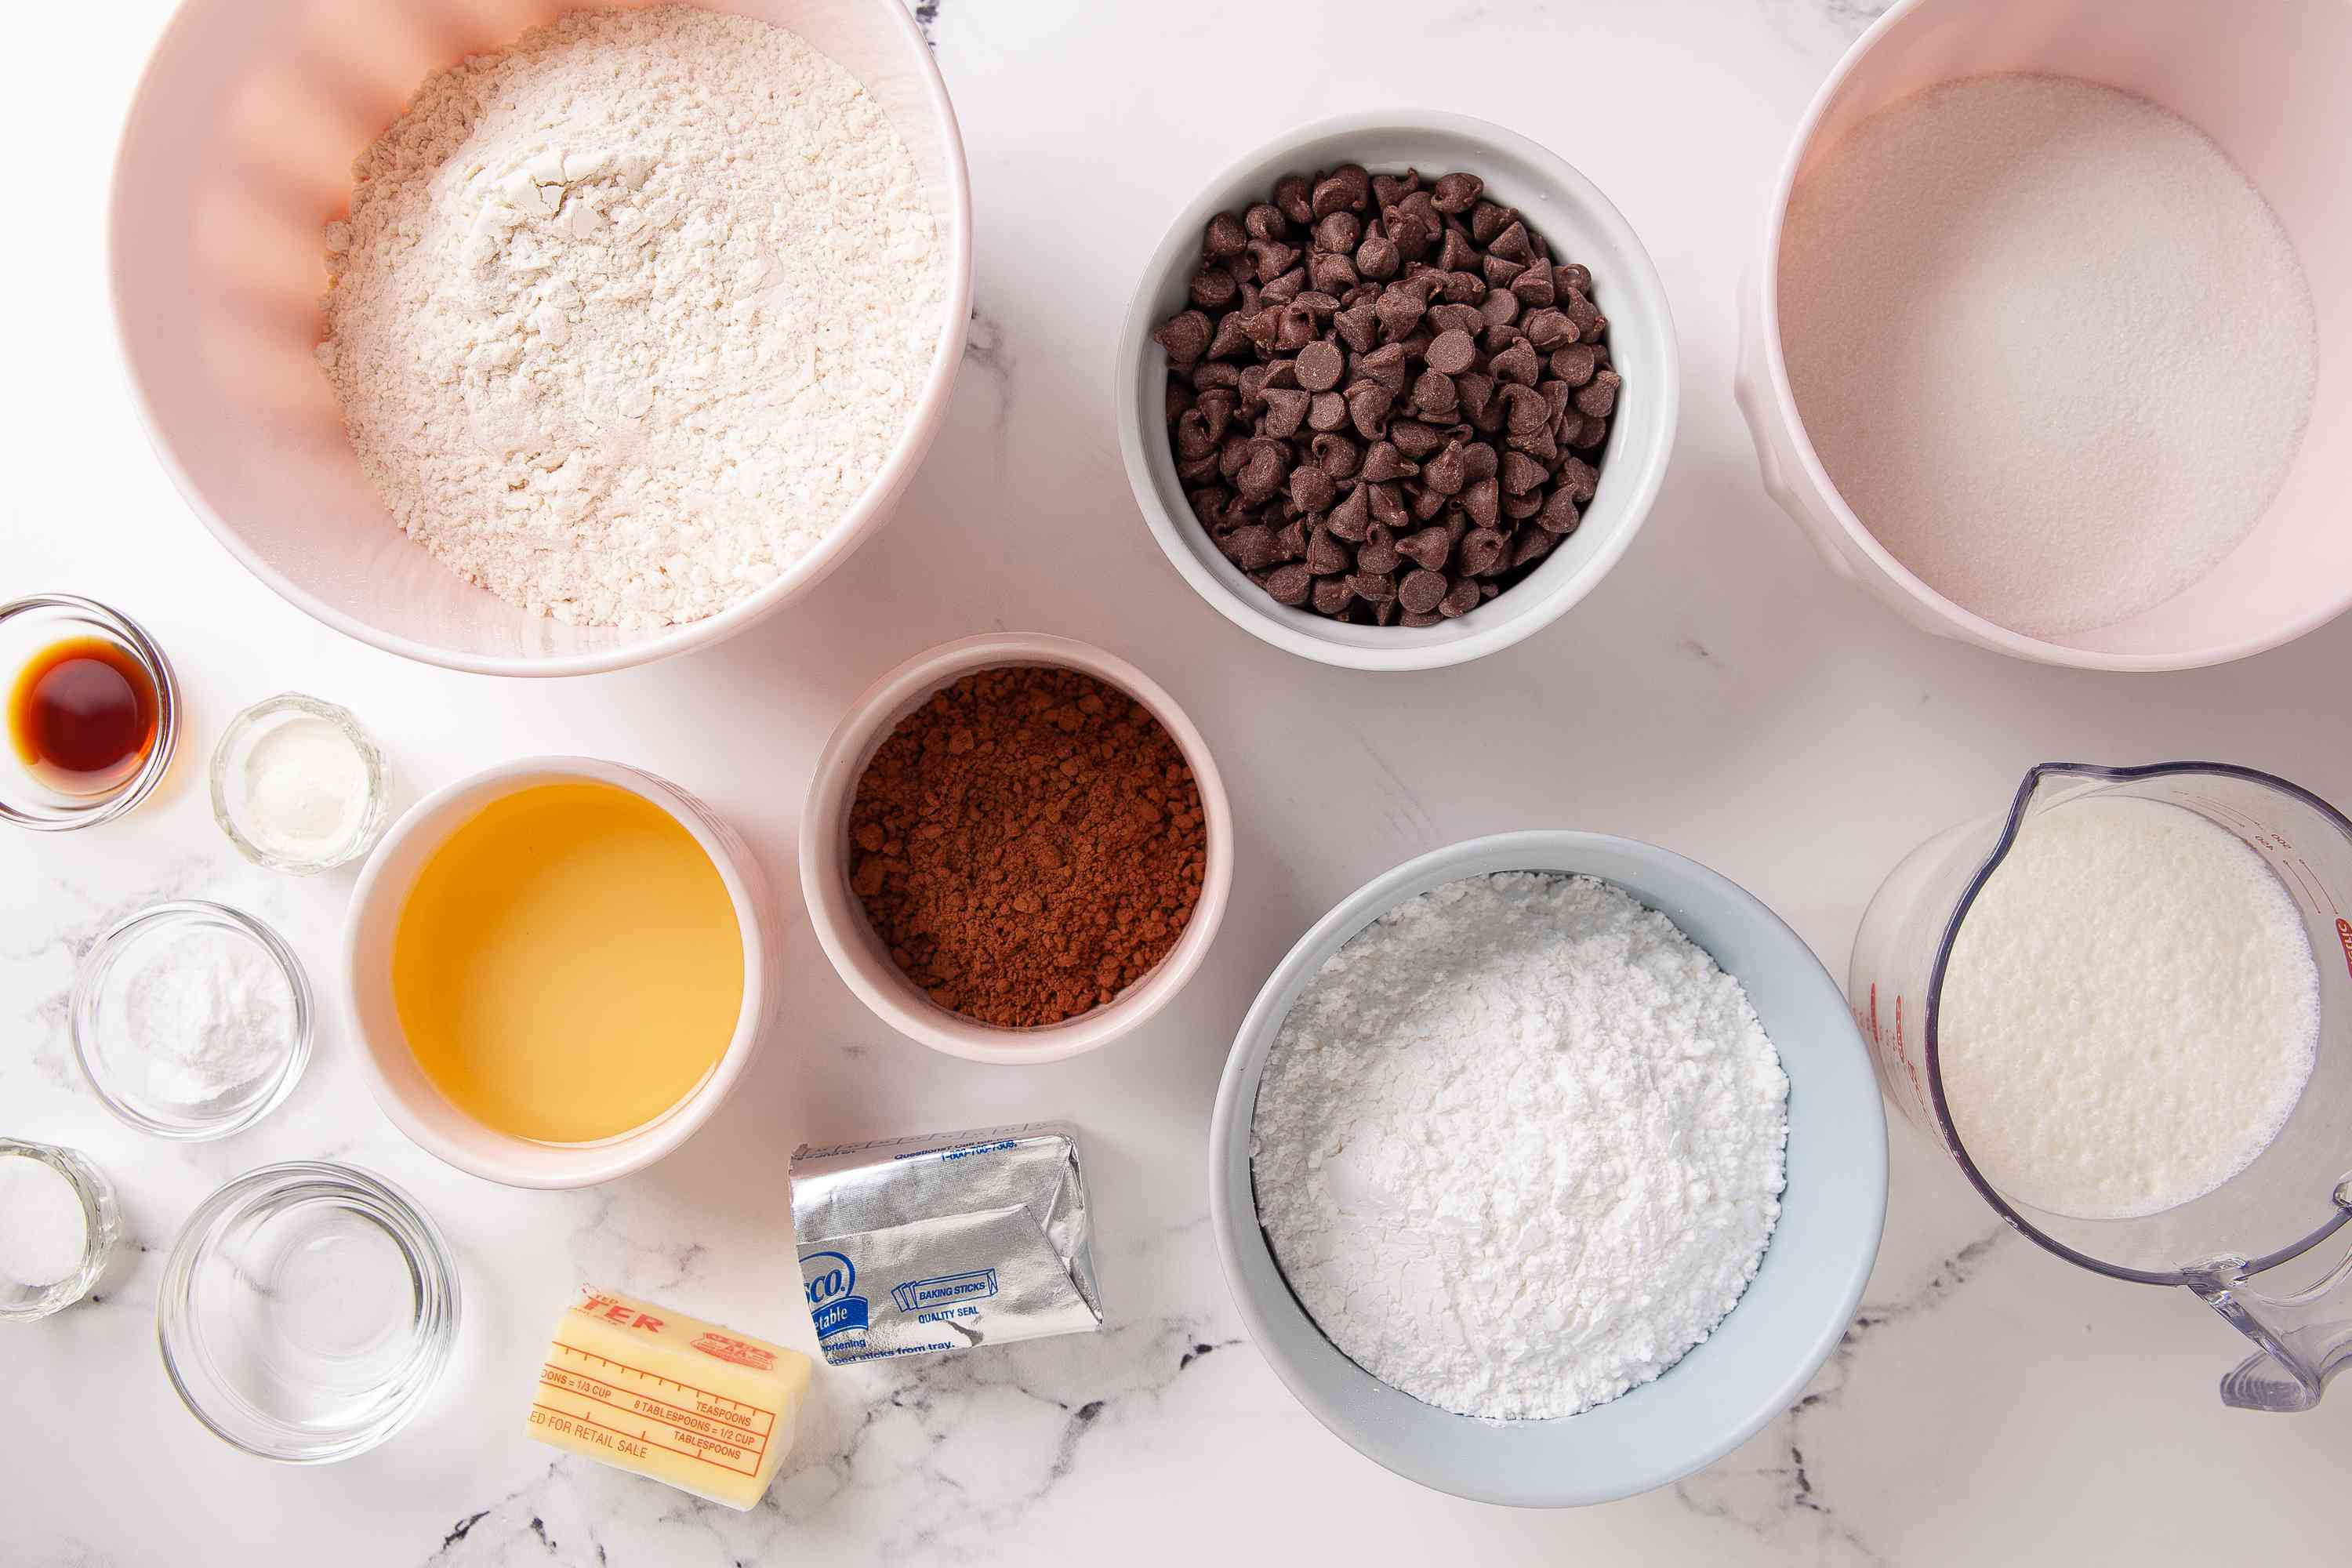 Gather the ingredients for Ding Dong Cake